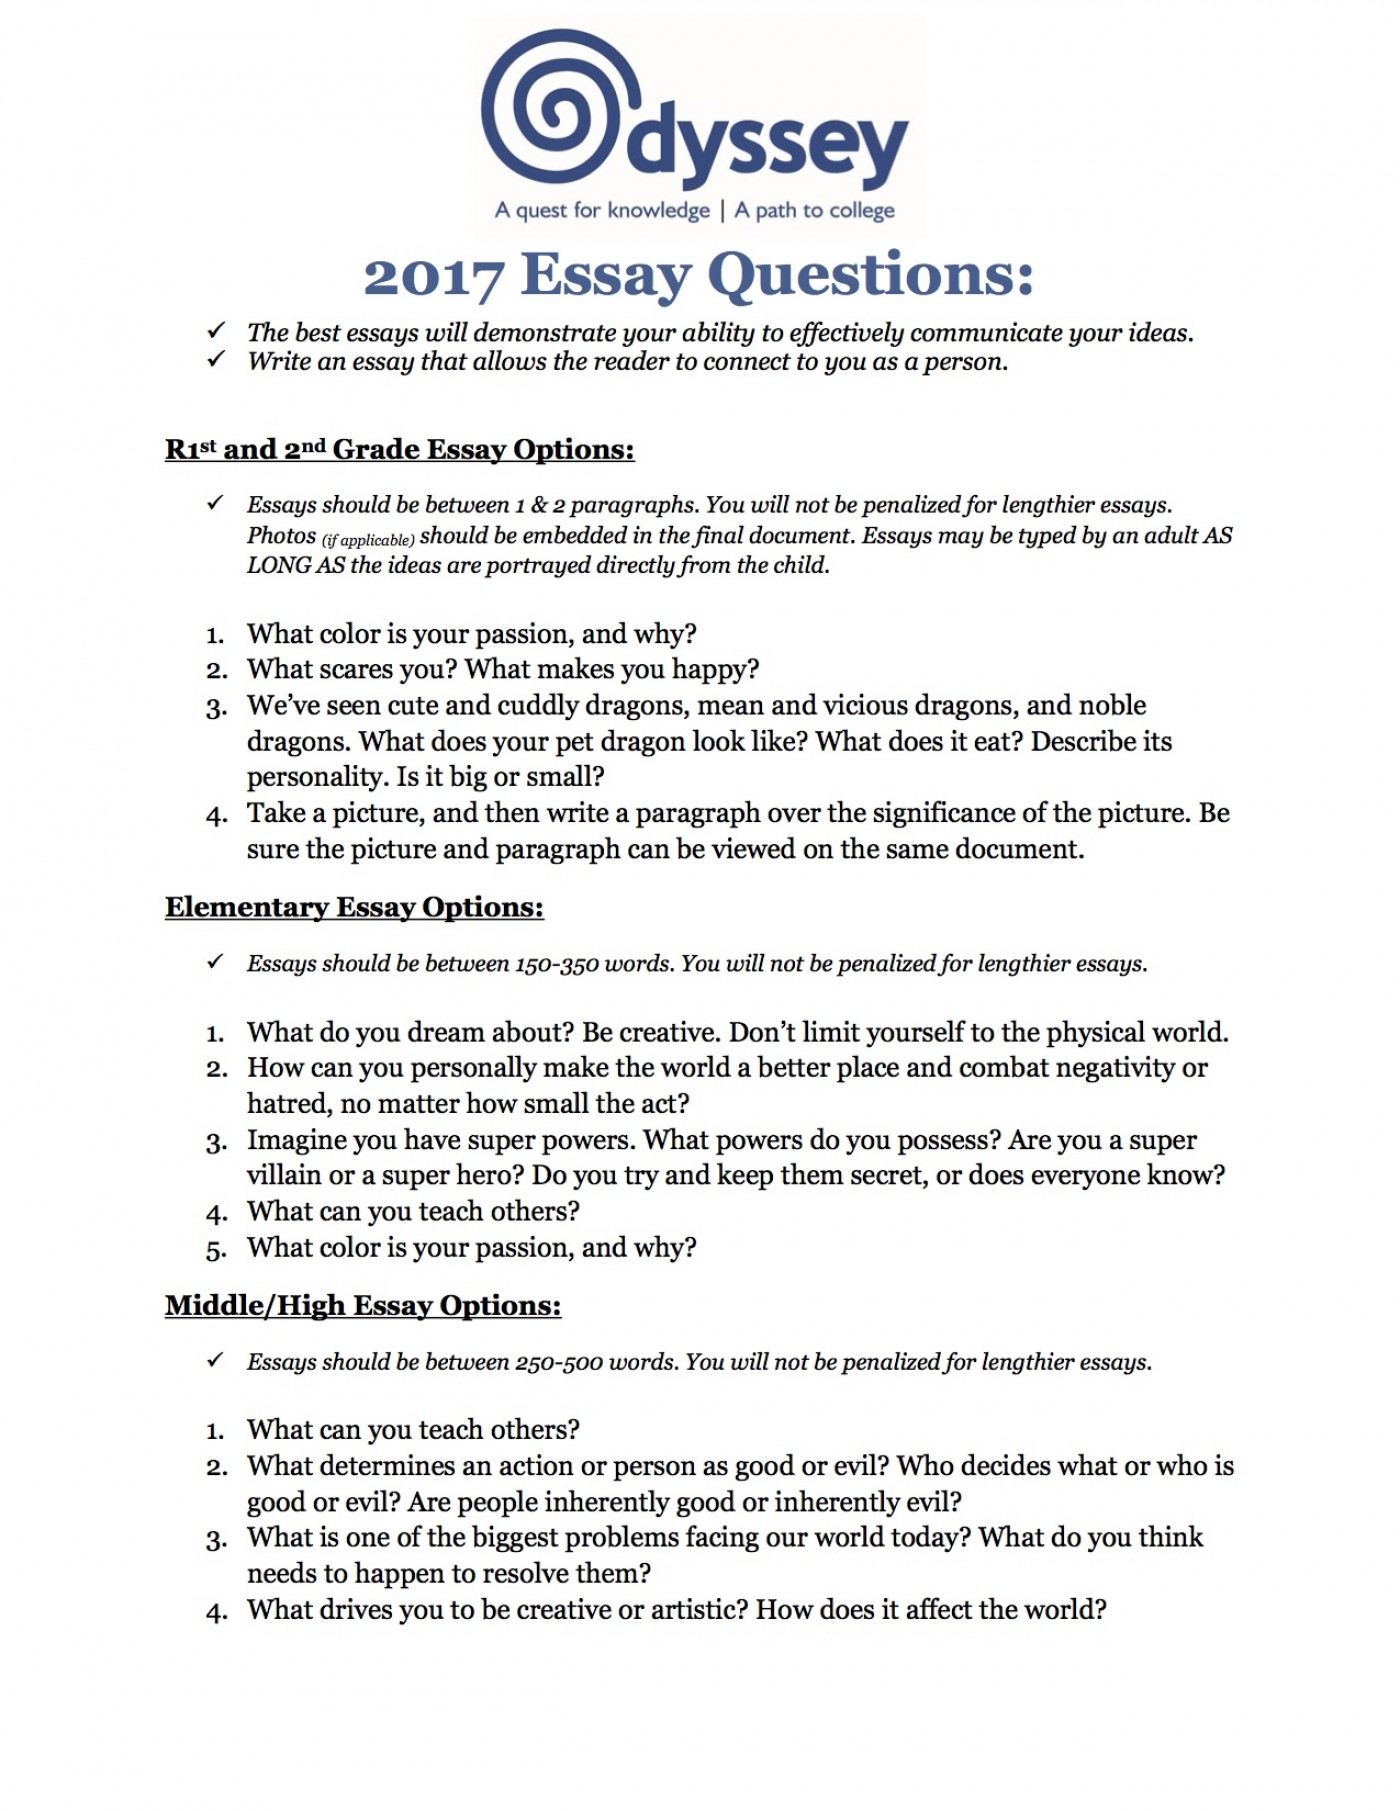 002 Odyssey Essay Topics 5829f1d2c75f9a7c5588b1c6 Proposed20essay20topics202017 Amazing Hero Prompt 1400